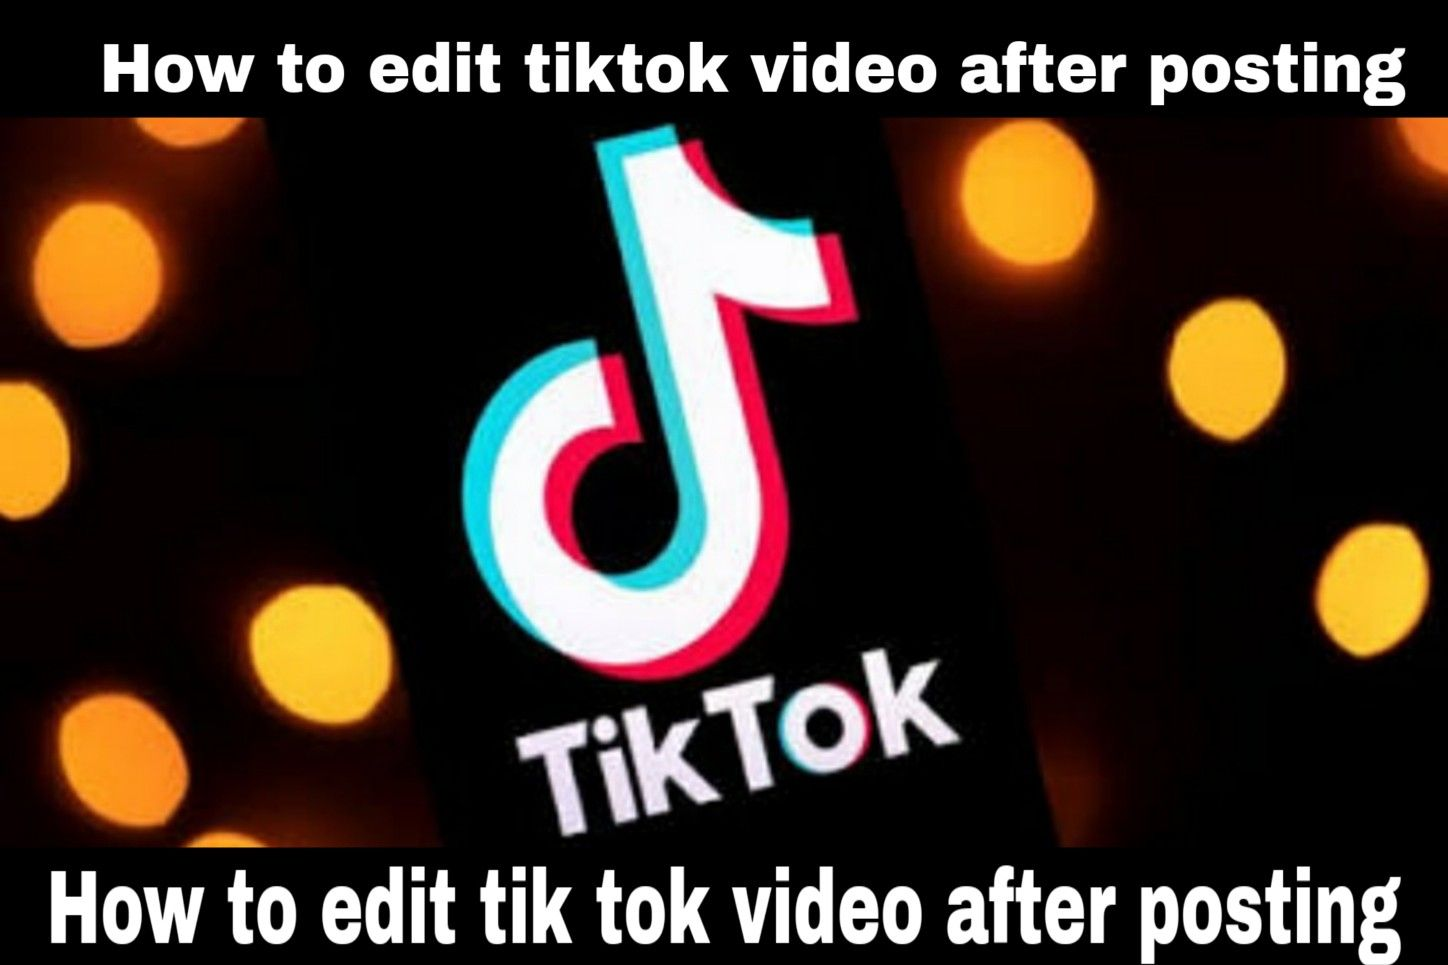 How To Edit Tik Tok Video After Posting Video Editing Apps Video Editing Editing Apps